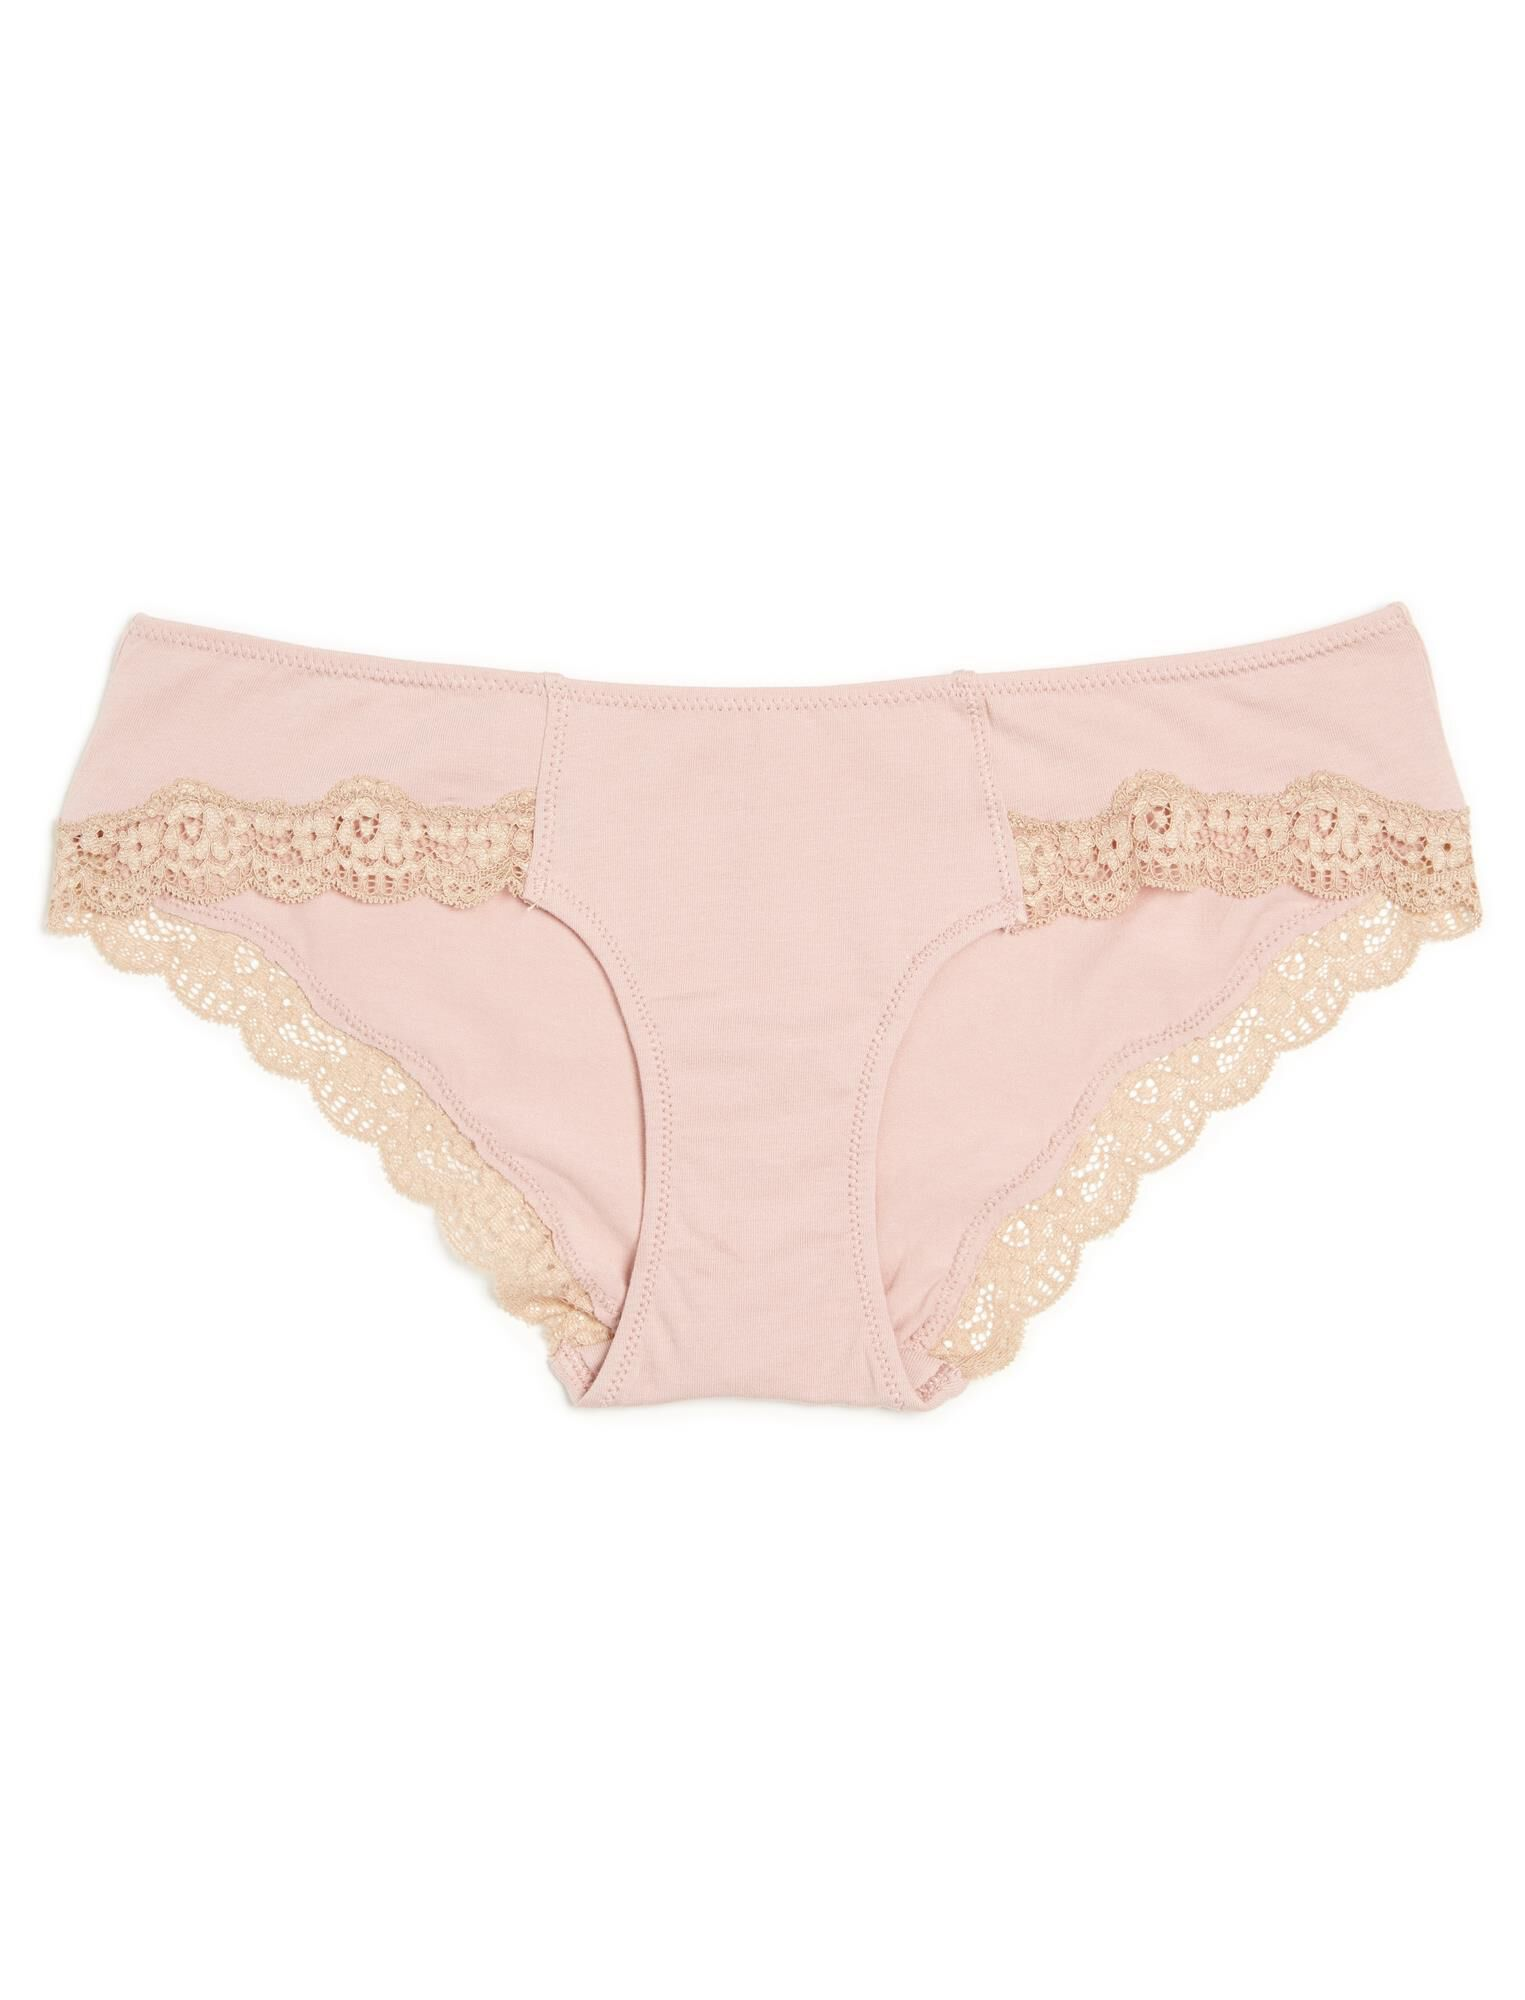 Lace Maternity Hipster Panties (single)